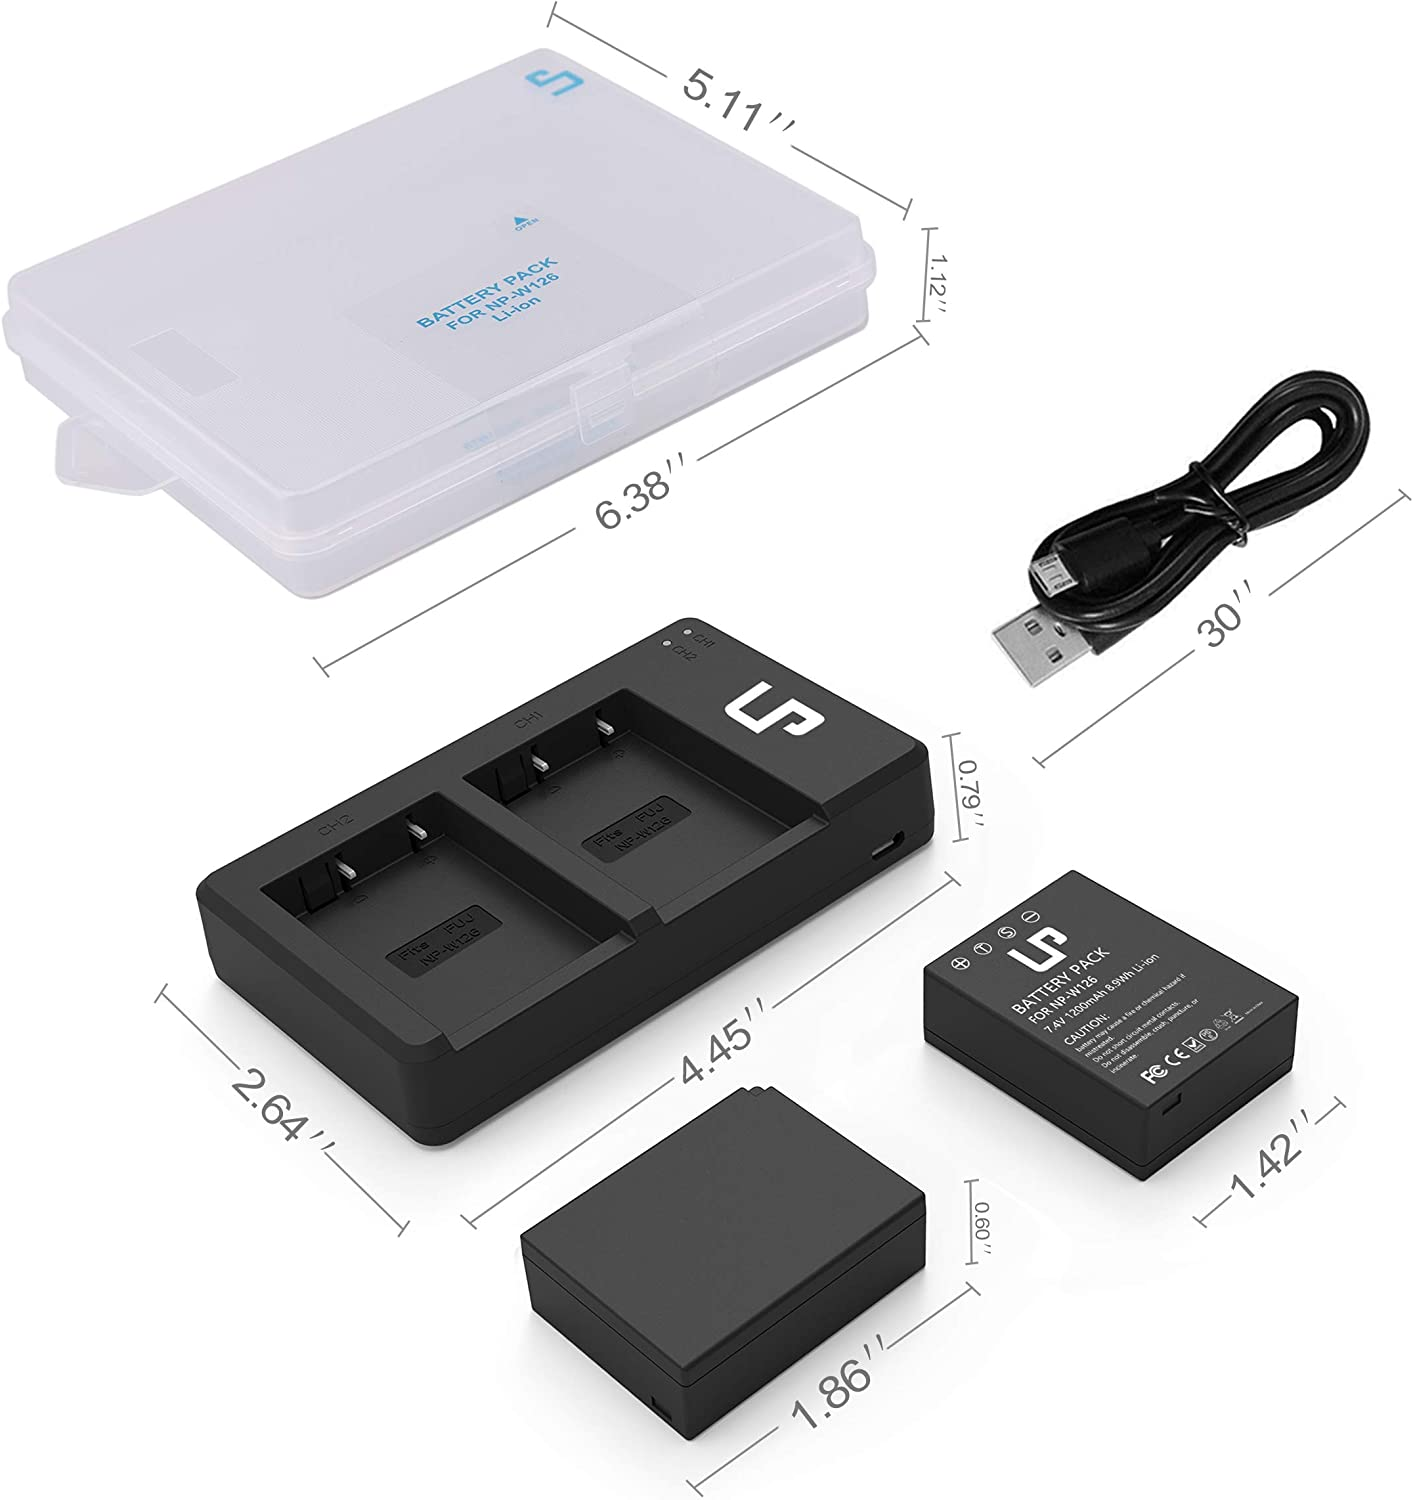 X-T100 X-A5 X-T10 LP NP-W126 NP W126S Battery Charger Pack X-H1 2-Pack Battery /& Dual Slot Charger X100F /&More X-Pro1 X-T20 Compatible with Fujifilm FinePix X-T3 X-T2 X-T30 X-A7